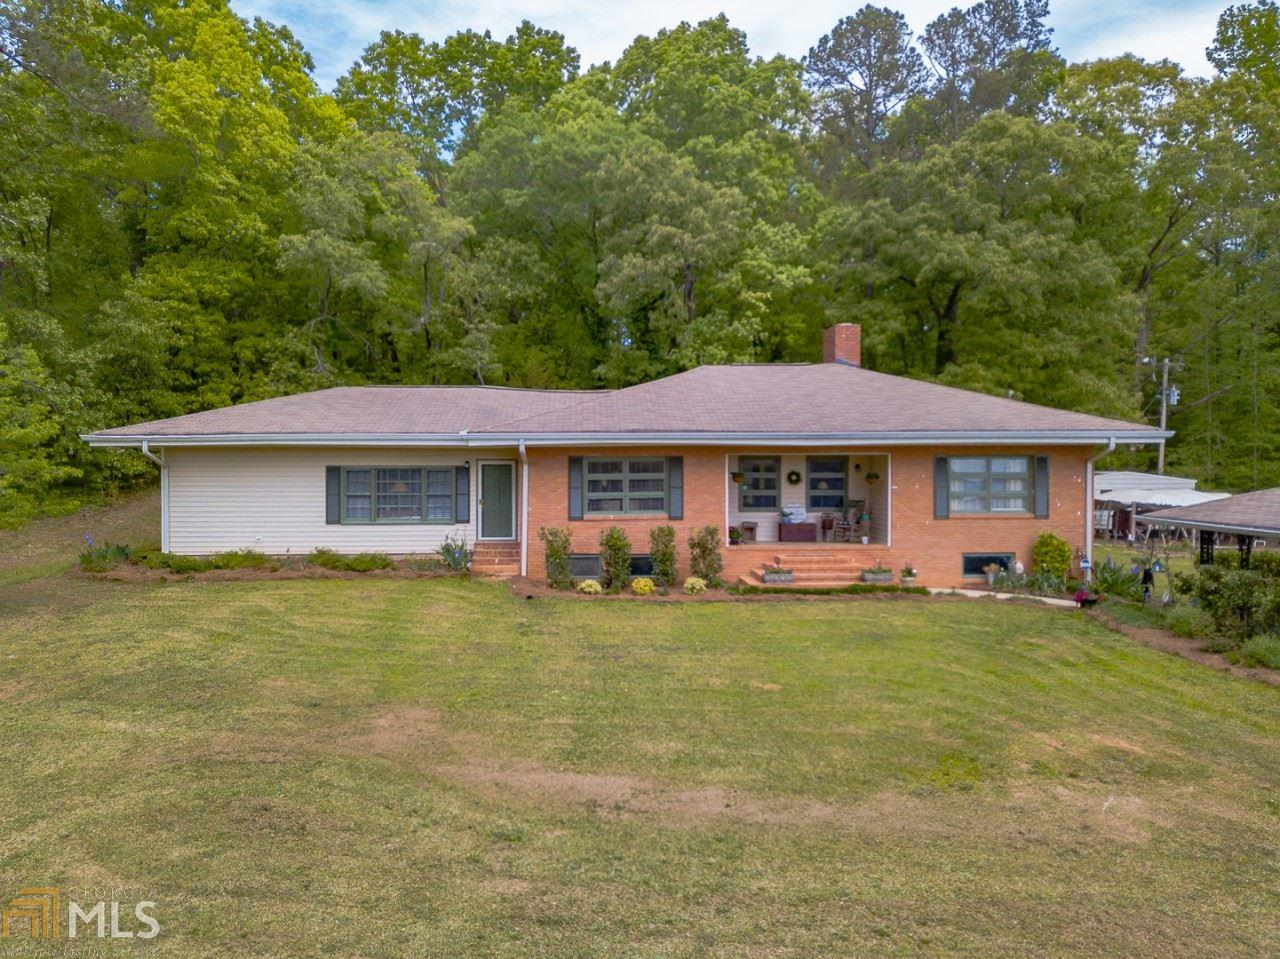 2983 Lee Rd, Snellville, Georgia 30039-5503, 3 Bedrooms Bedrooms, ,3 BathroomsBathrooms,Single Family,For Sale,2983 Lee Rd,1,8965662